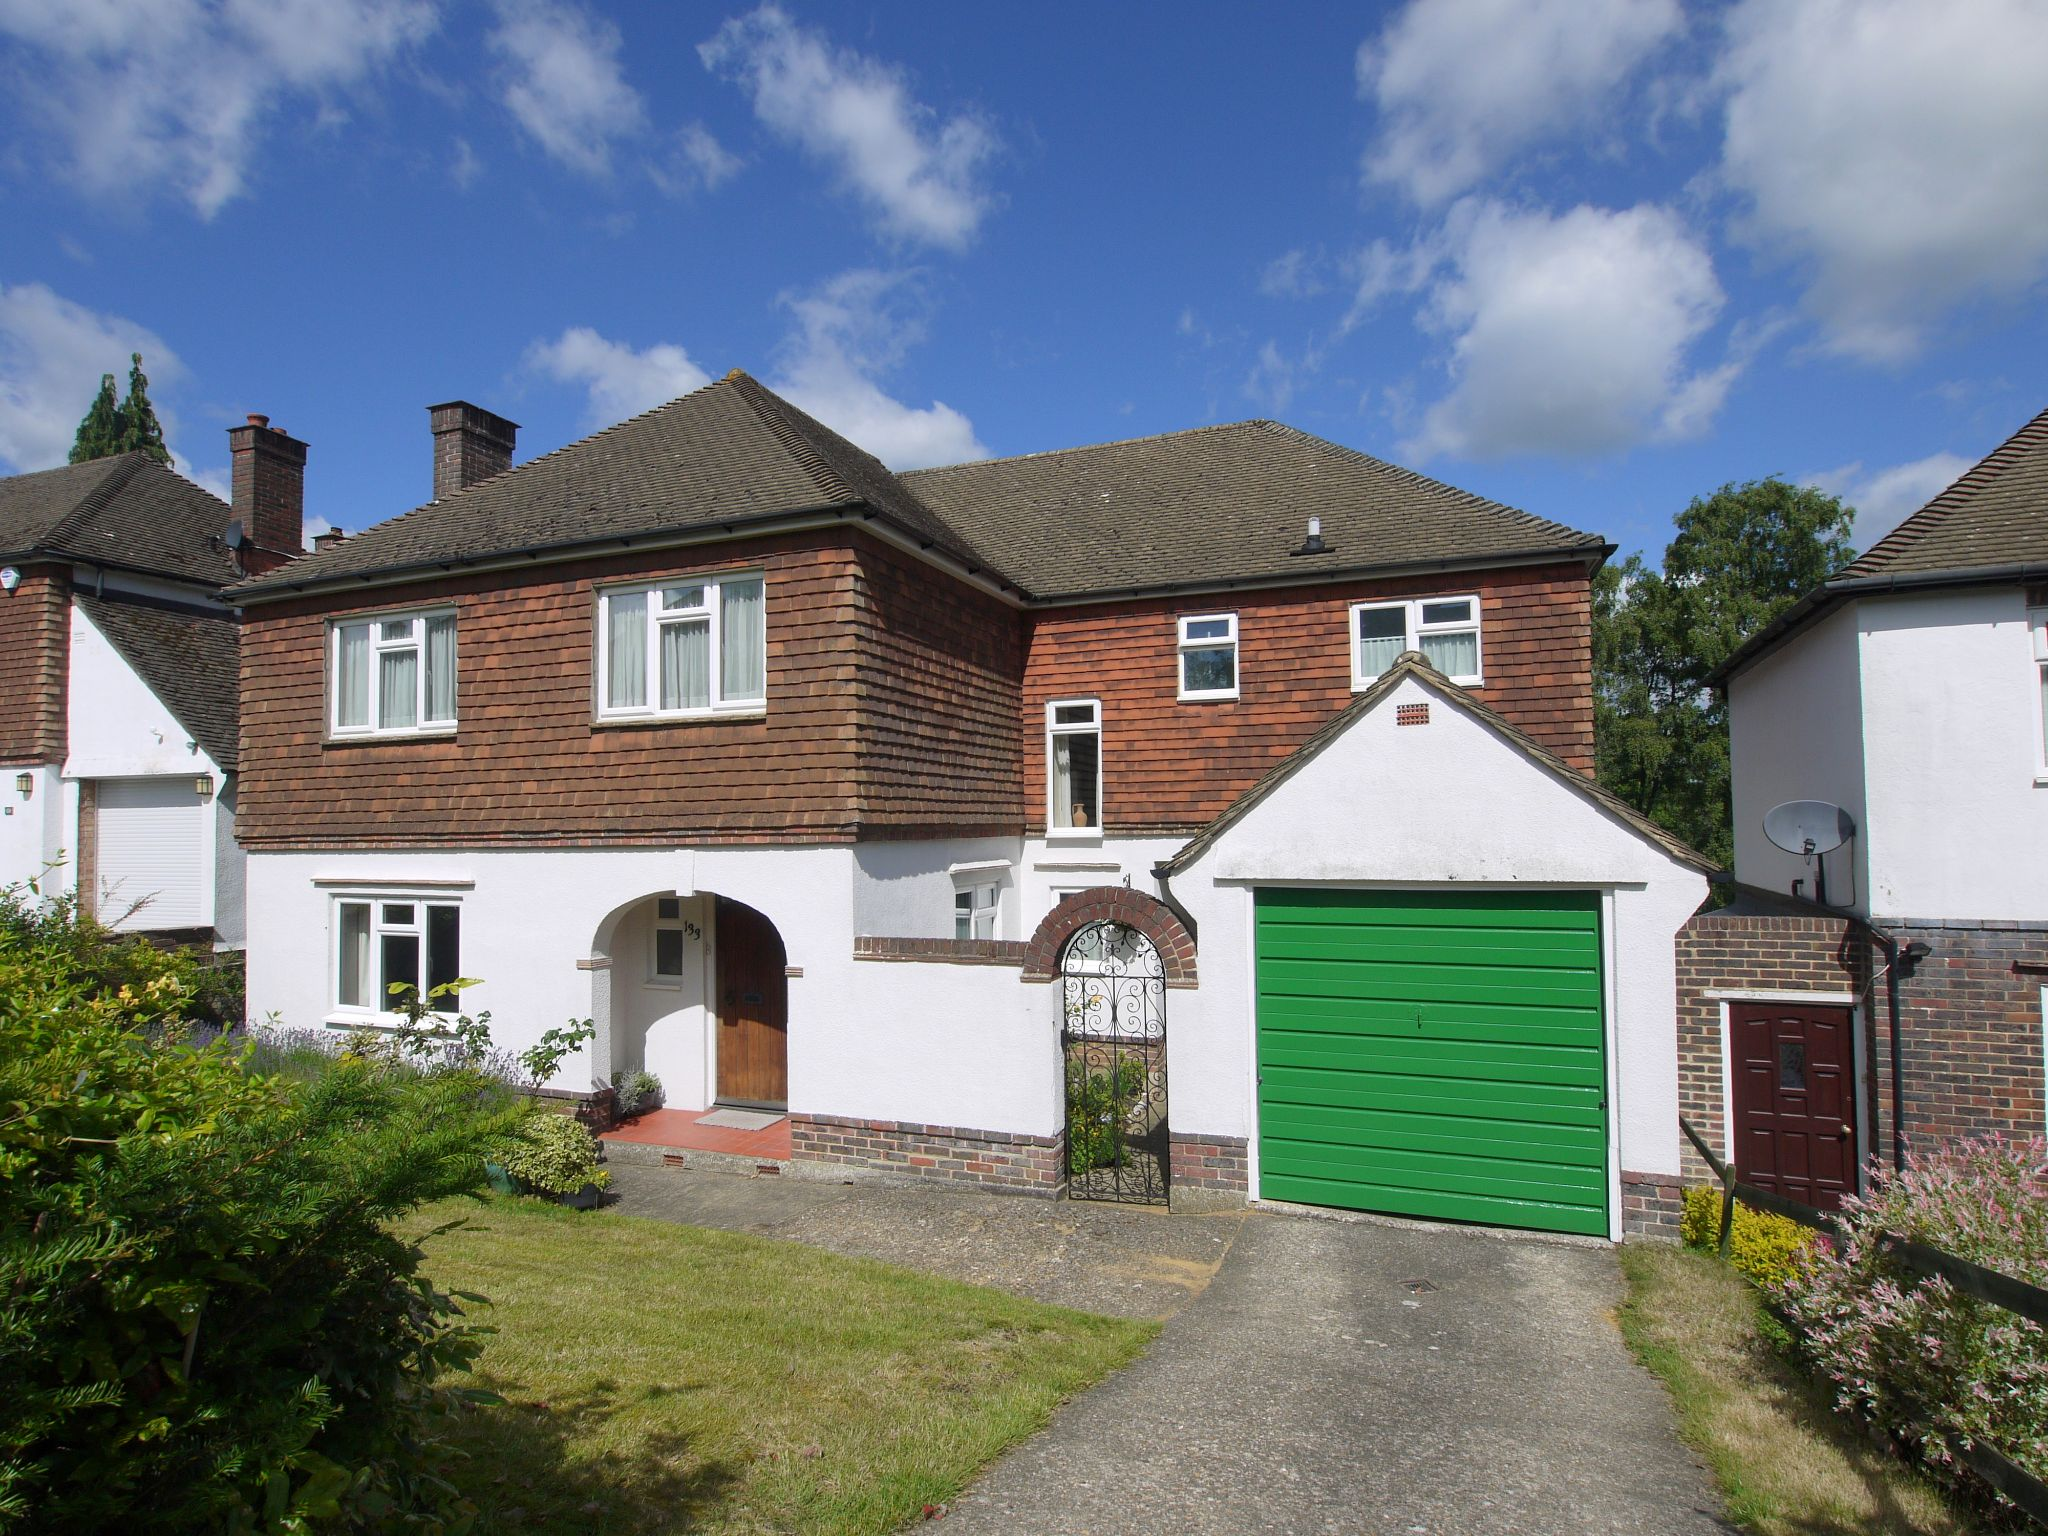 5 bedroom detached house Sale Agreed in Sevenoaks - Photograph 1